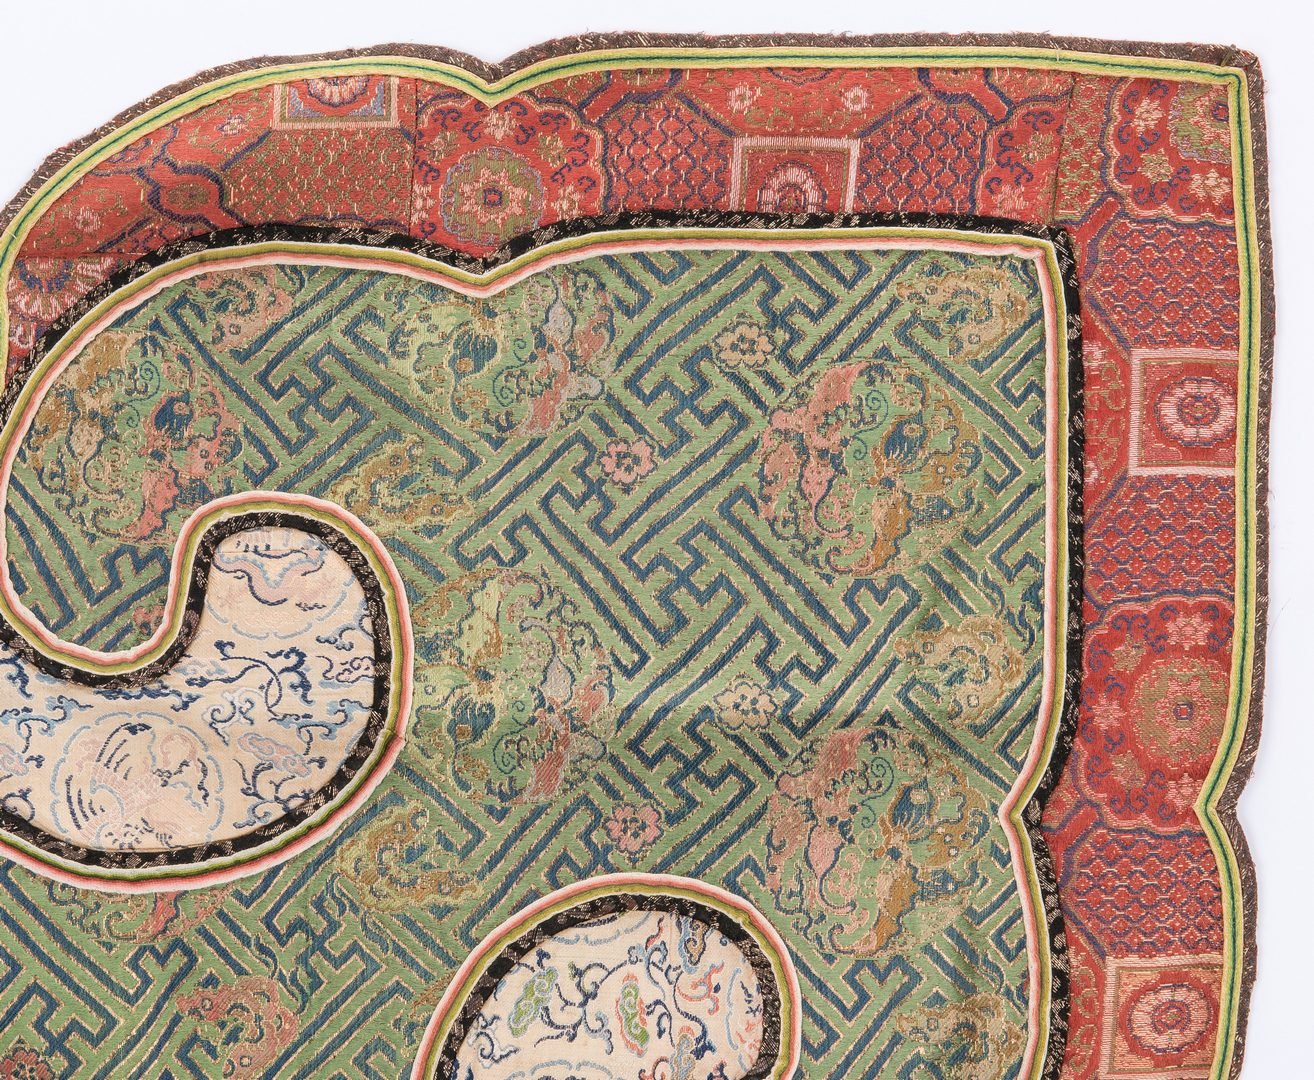 Lot 23: 2 Thangkas and 1 Chinese Embroidery, 3 items